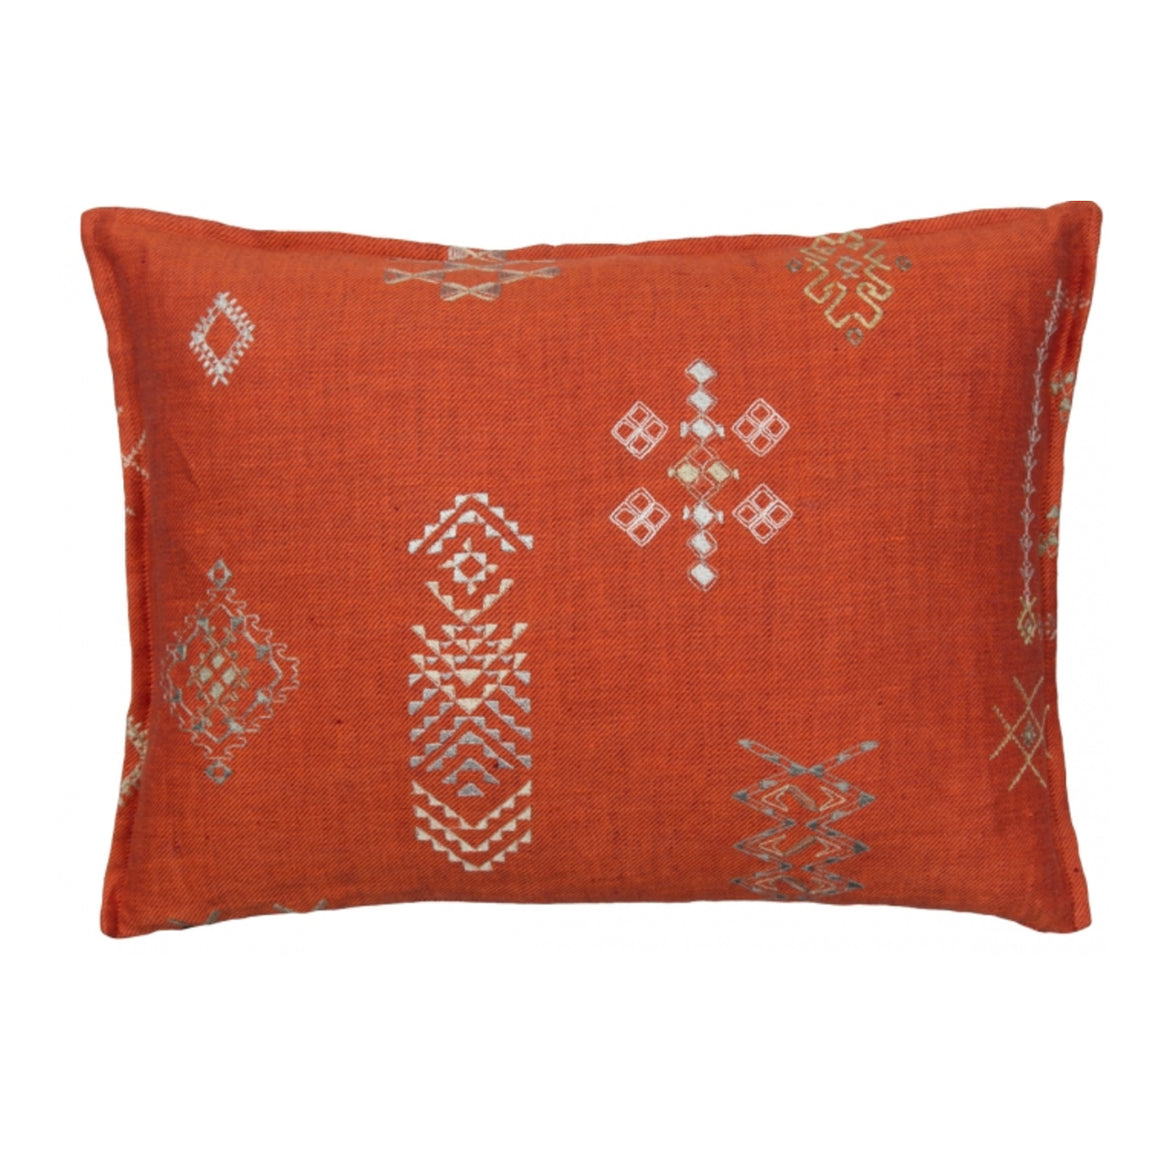 Tumbleweed Vermillon Pillow - KESTREL